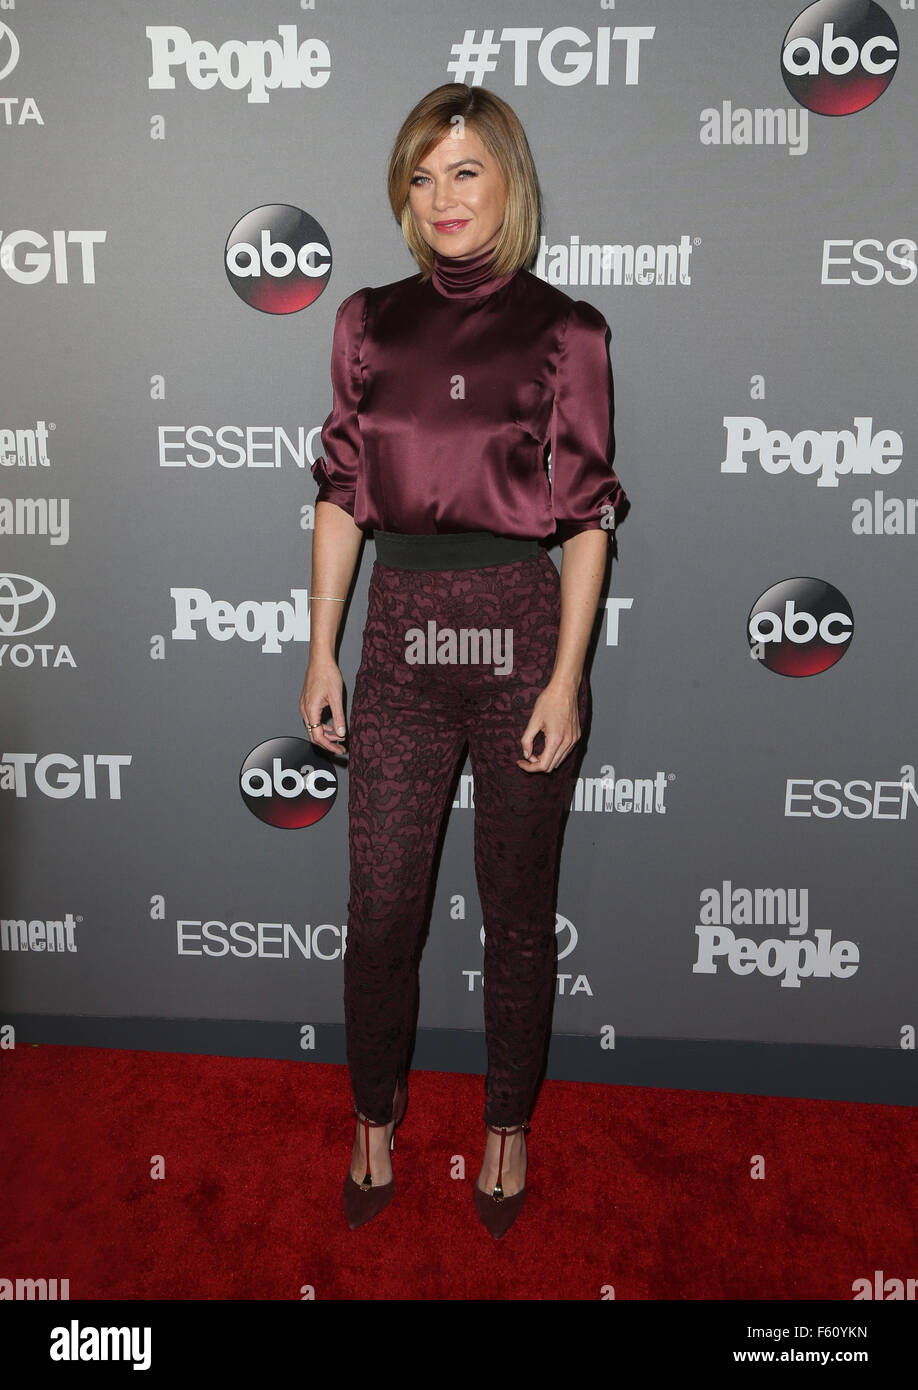 ABC's TGIT premiere event - Arrivals  Featuring: Ellen Pompeo Where: West Hollywood, California, United States When: Stock Photo